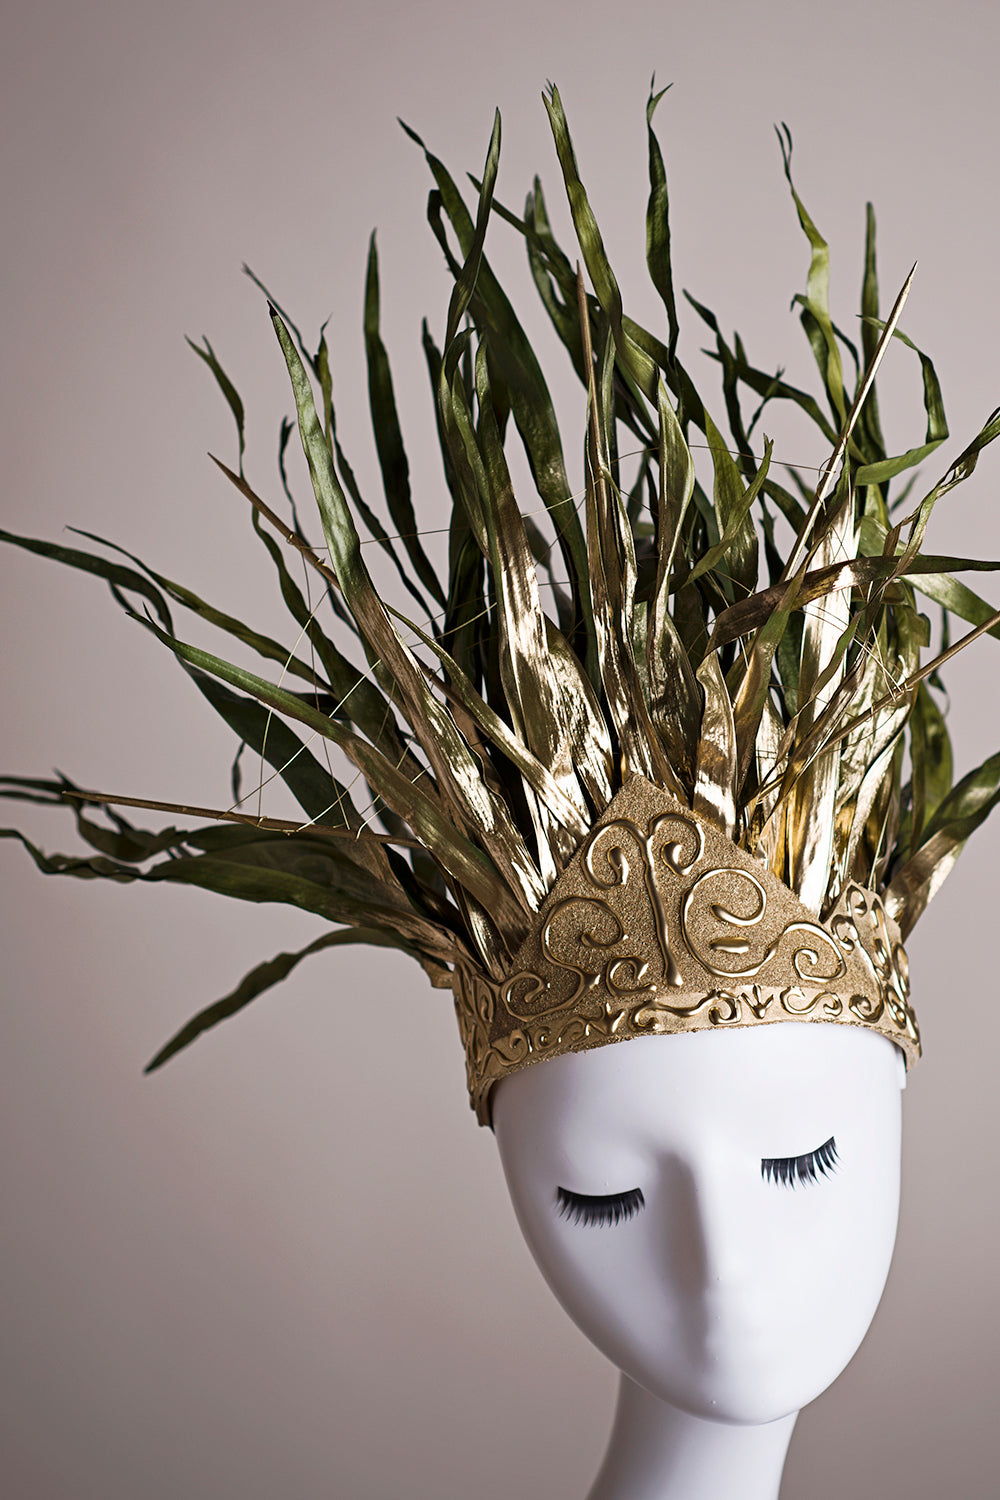 Forrest Warrior Handcrafted Couture Floral Headpiece - Honeydrops Designs